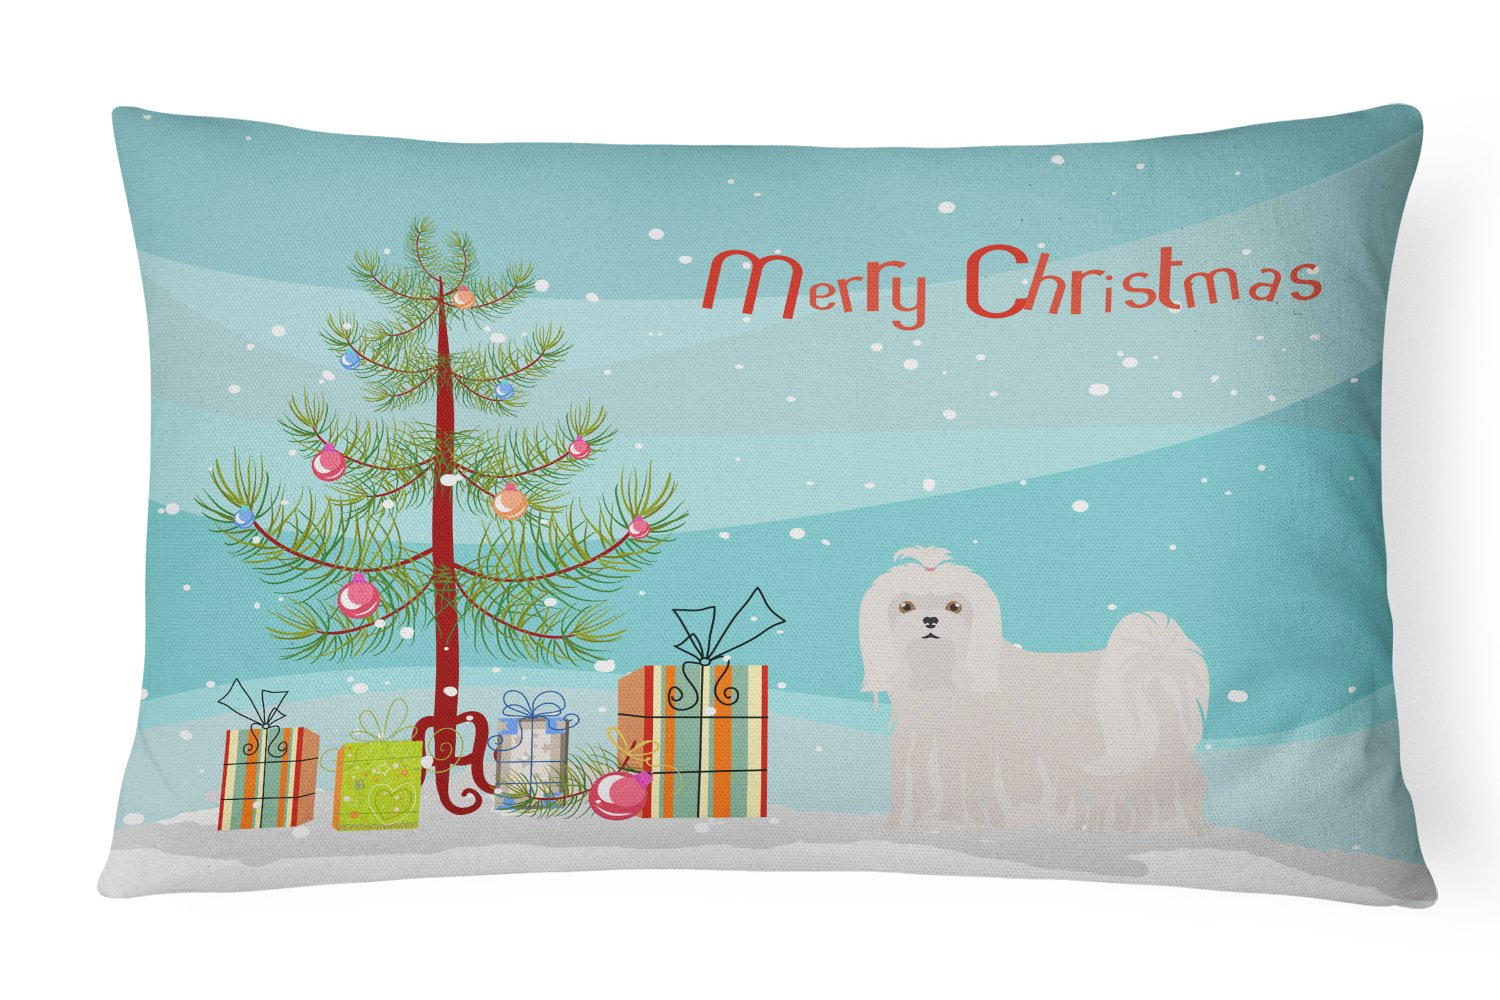 Maltese Christmas Tree Canvas Fabric Decorative Pillow CK3471PW1216 by Caroline's Treasures